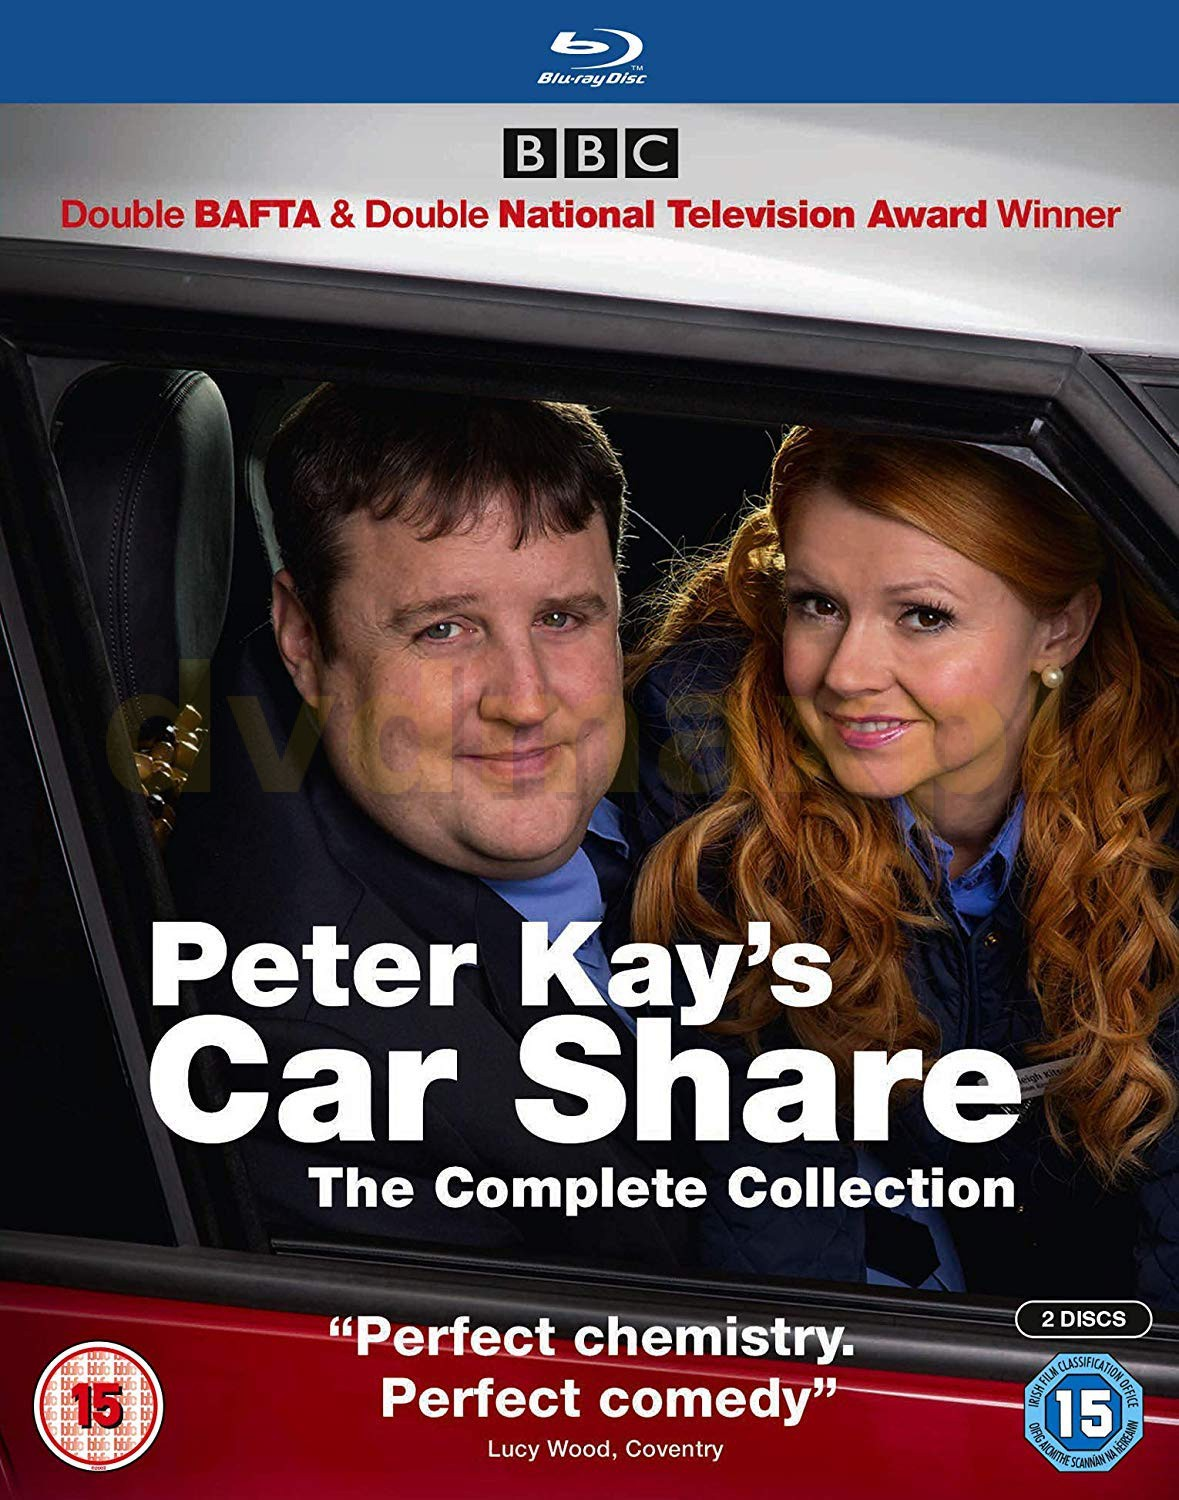 Peter Kay's Car Share - The Complete Collection (BBC) [Blu-Ray]